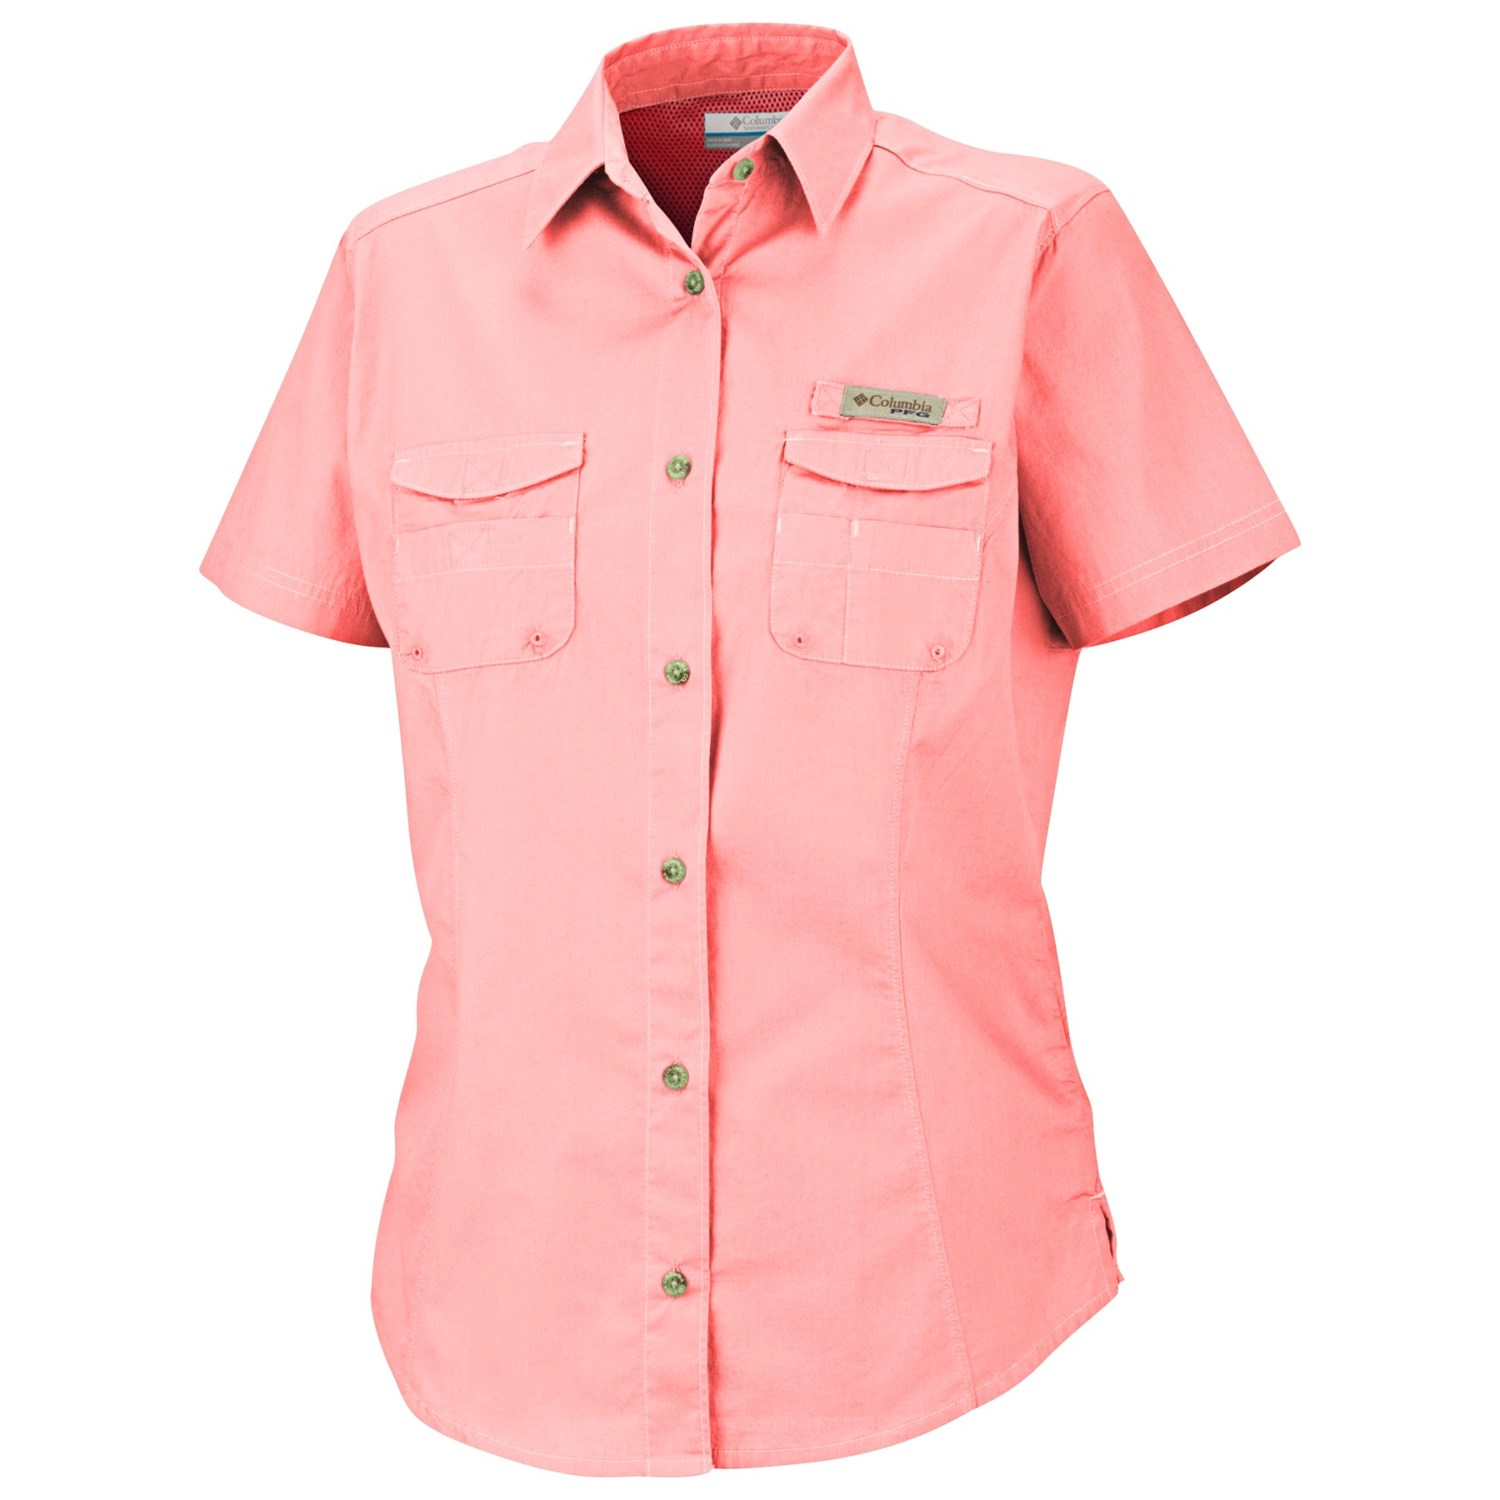 Document moved for Columbia shirts womens pfg